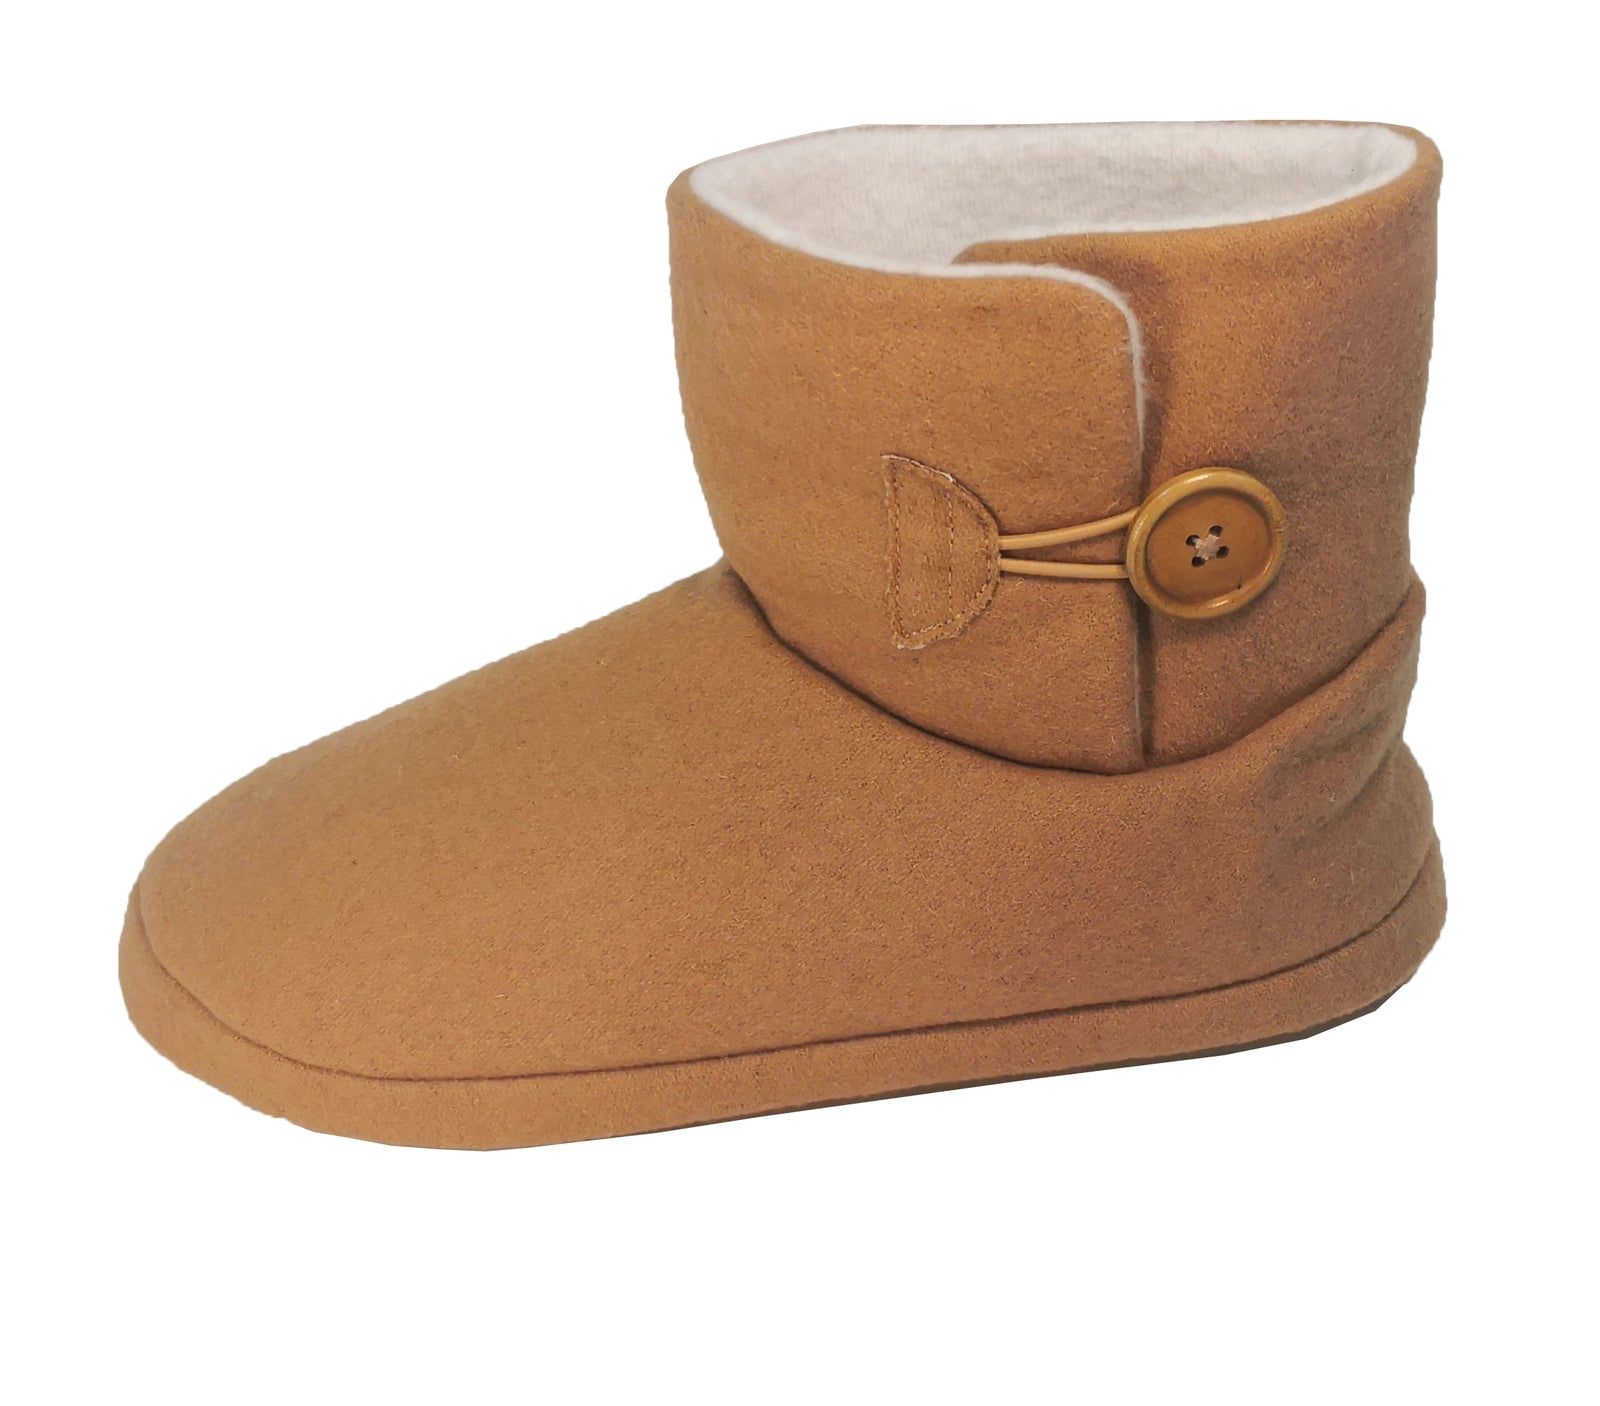 Archline Orthotic Ugg Boots Slippers Snugg Arch Support Warm Mini Button - Chestnut